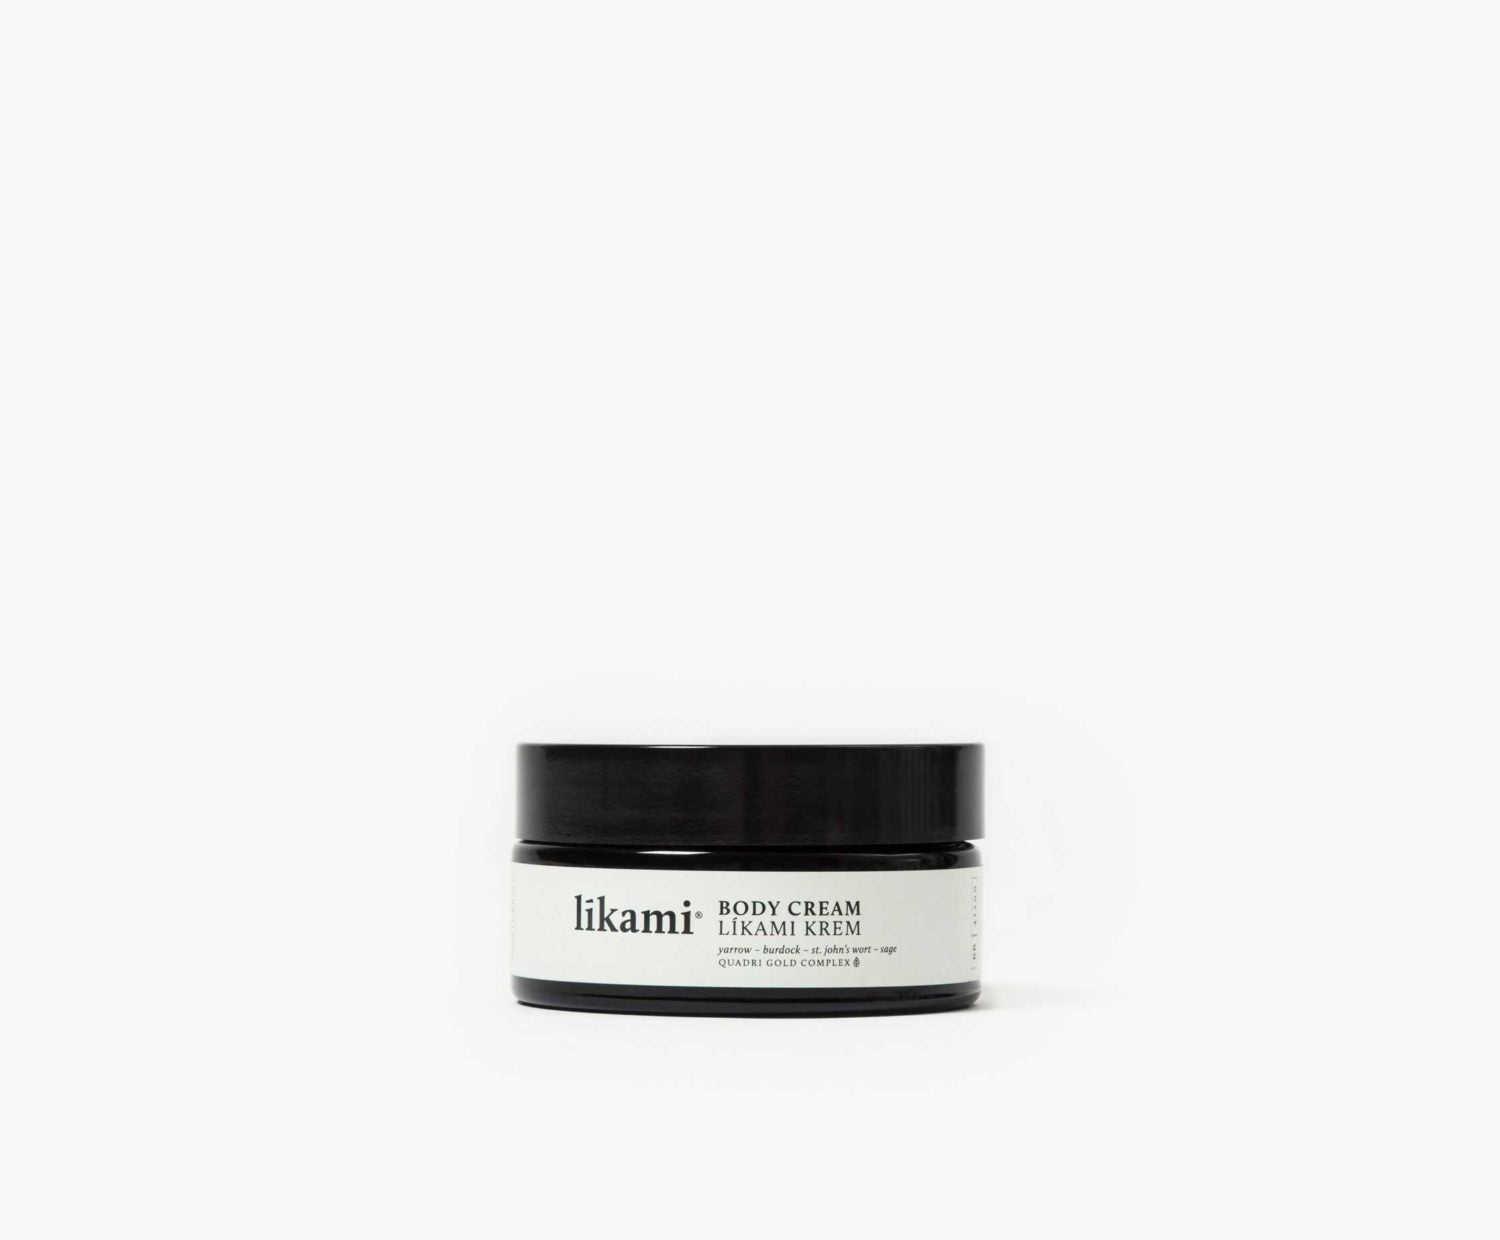 Likami - Body cream